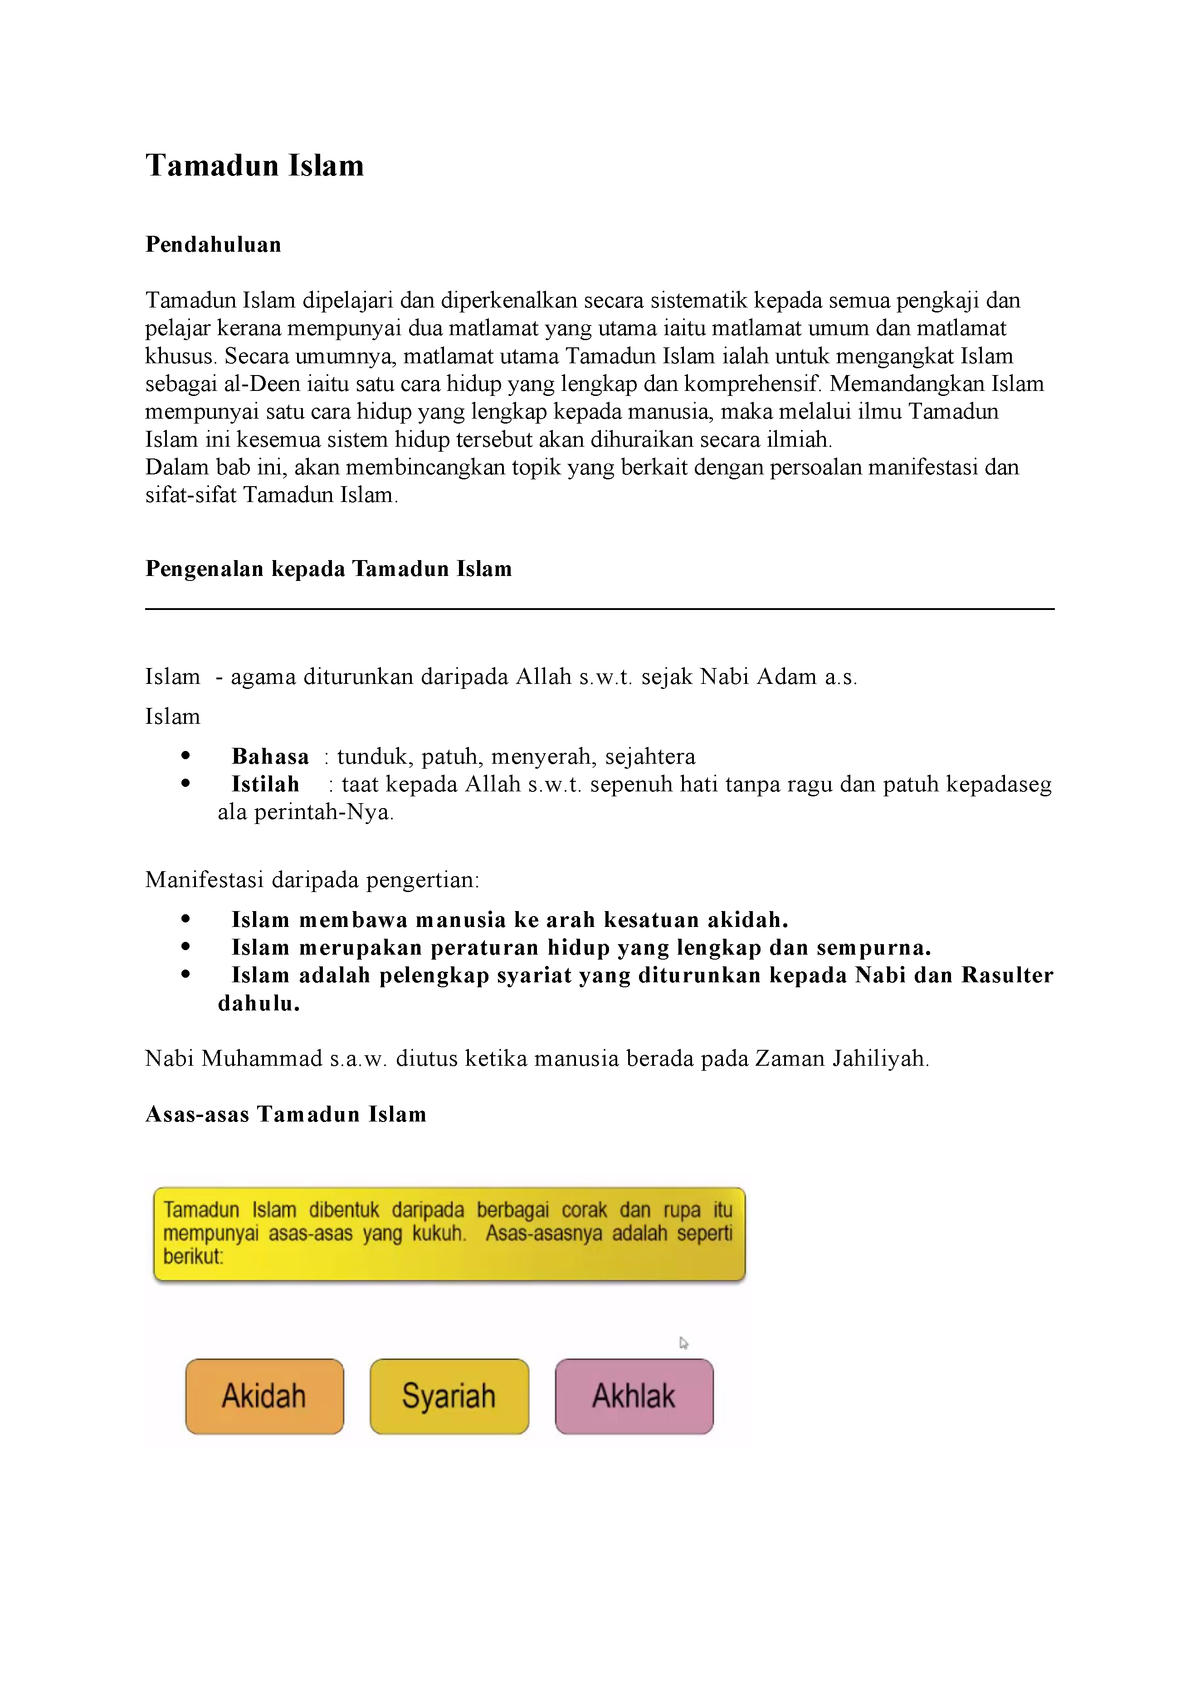 Bab 2 Lecture Notes 2 Islamic And Asian Civilization Studocu